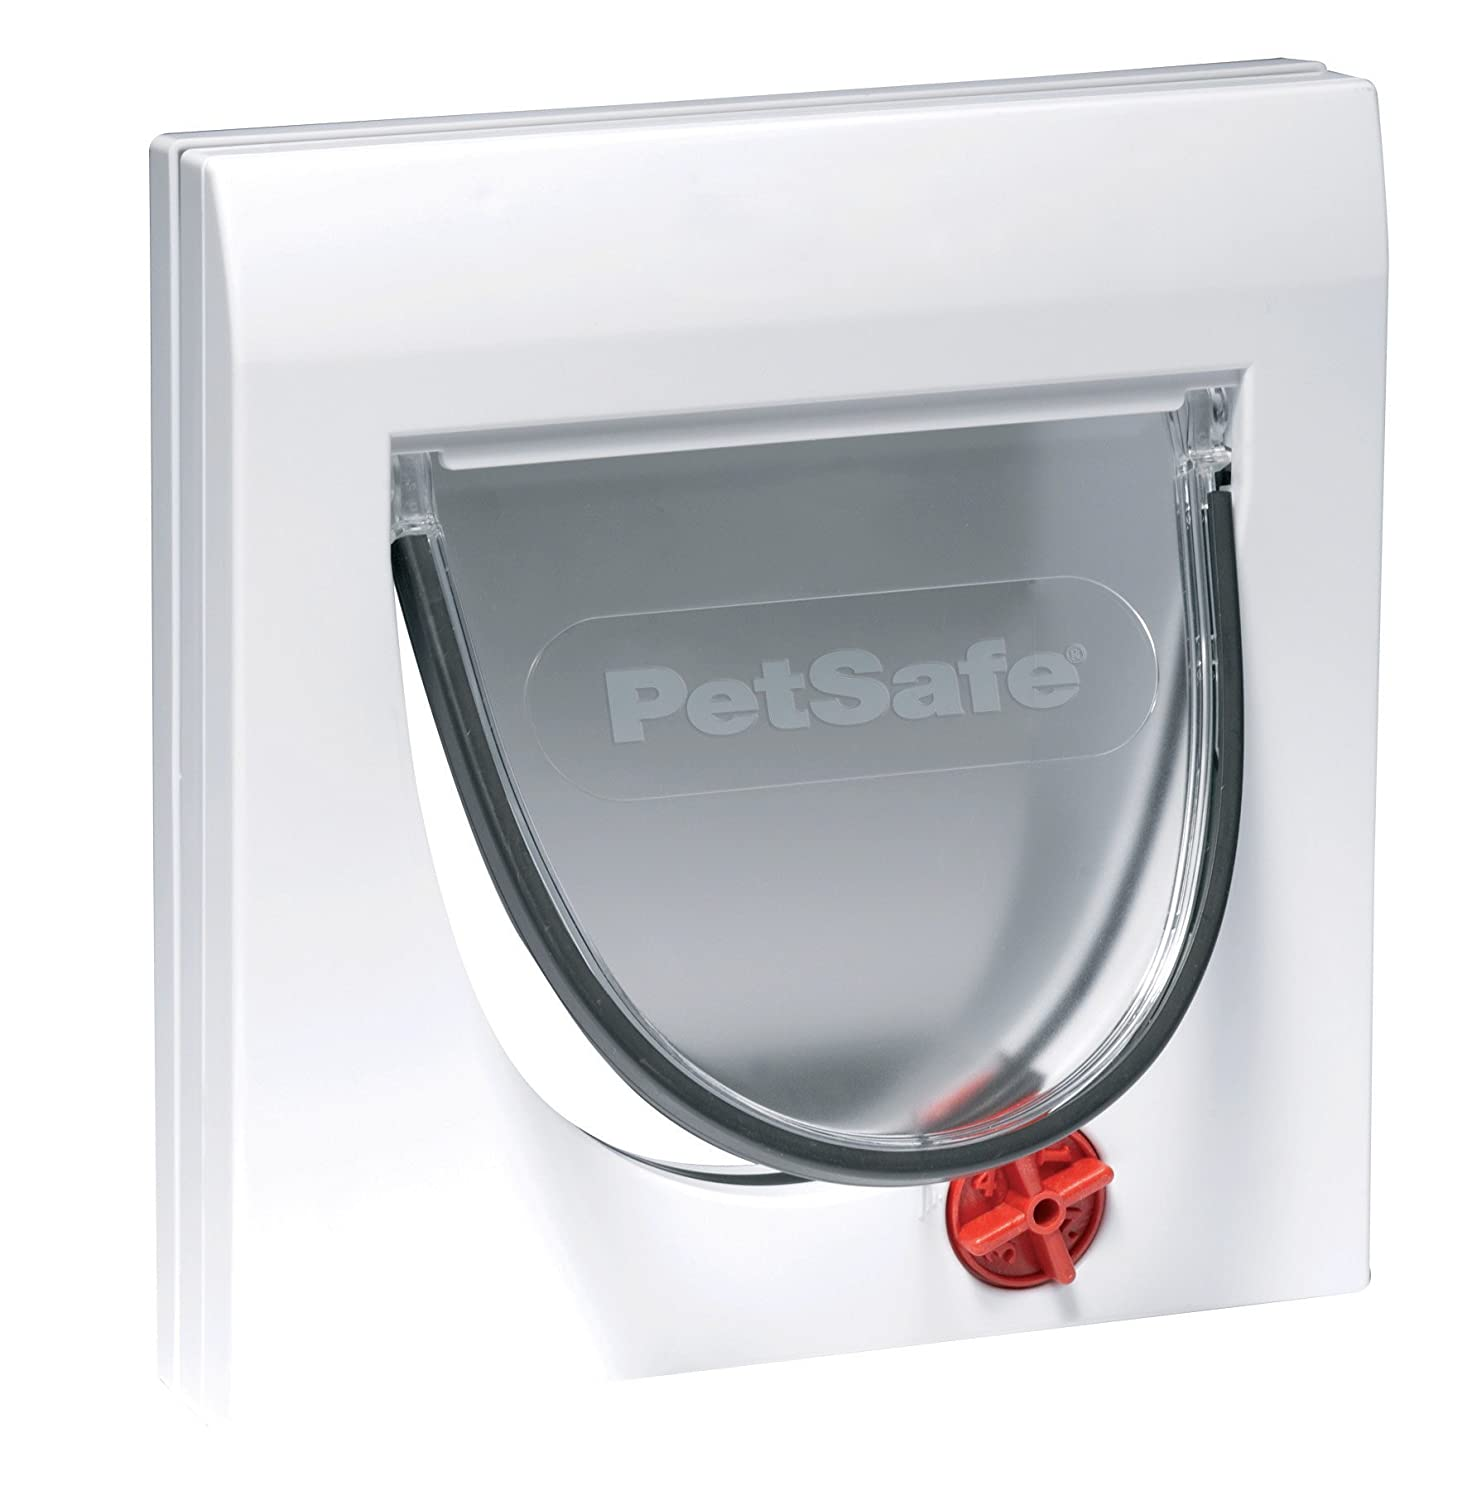 Petsafe Staywell 4 Way Locking Classic Cat Flap Tunnel Included Switch Lowes Easy Install Durable Pet Door For Cats Supplies